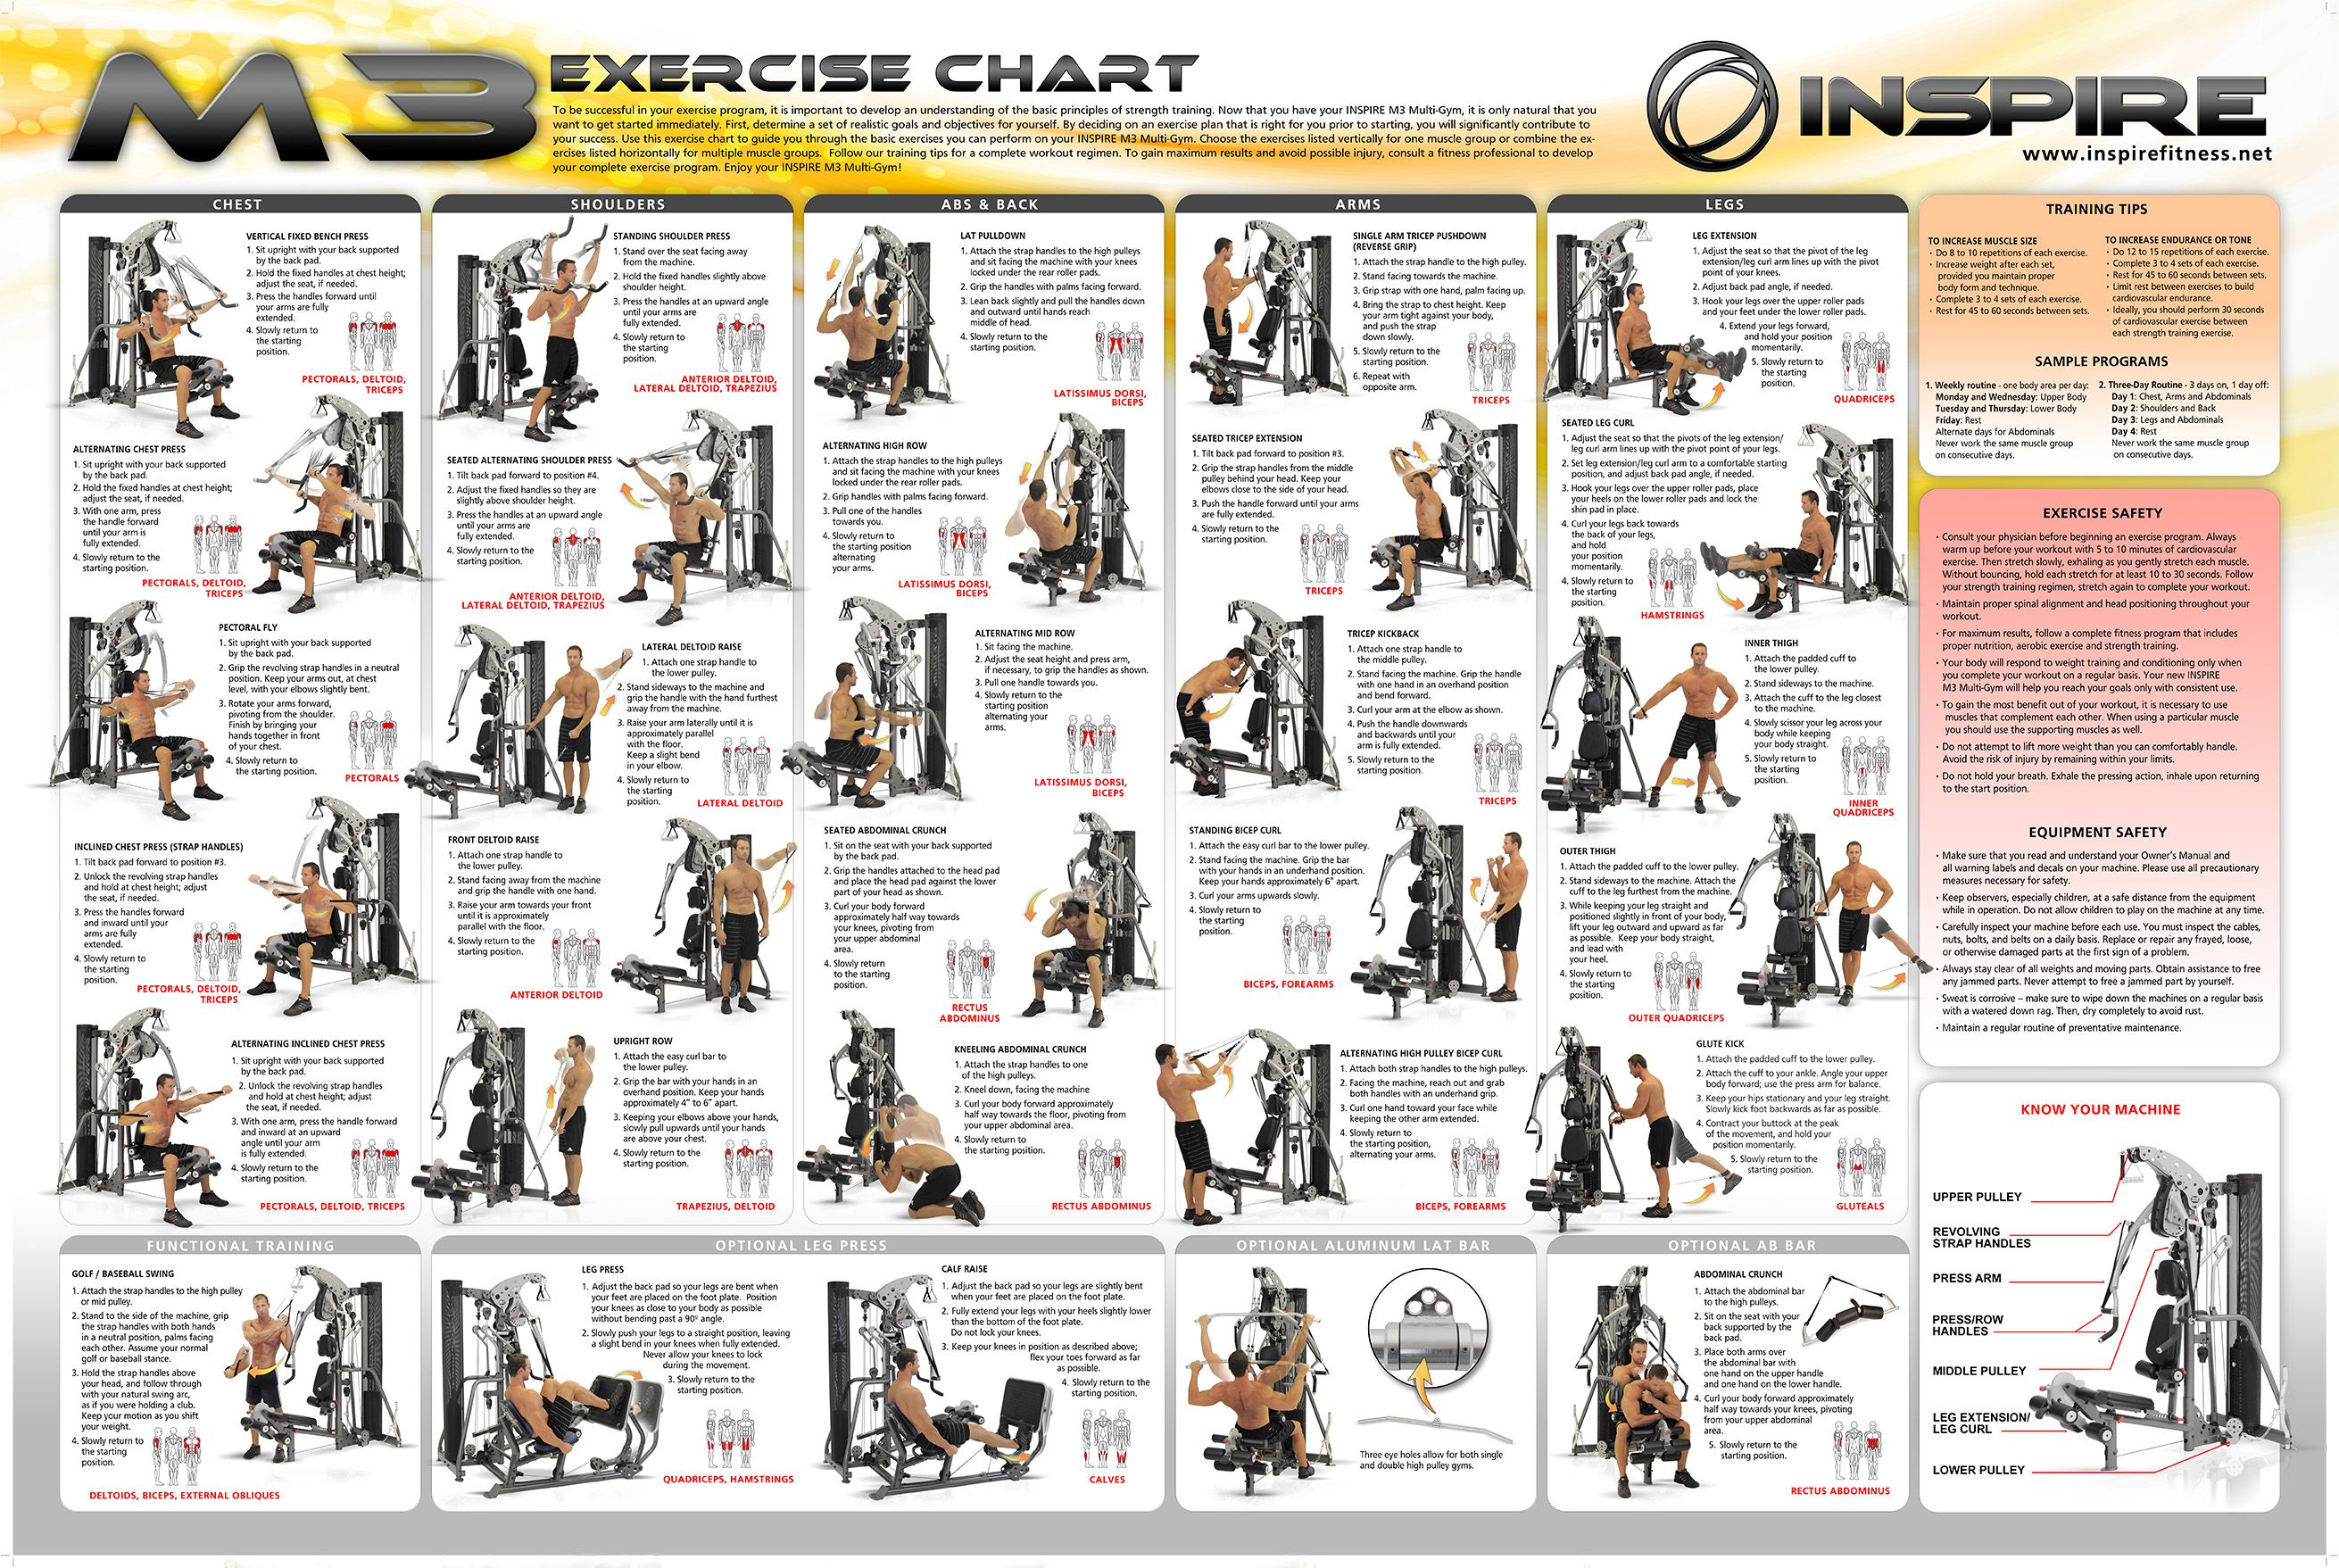 Gym Workout Chart For Chest For Men Weider Home Gym Exercise Chart Weight Machine Workouts